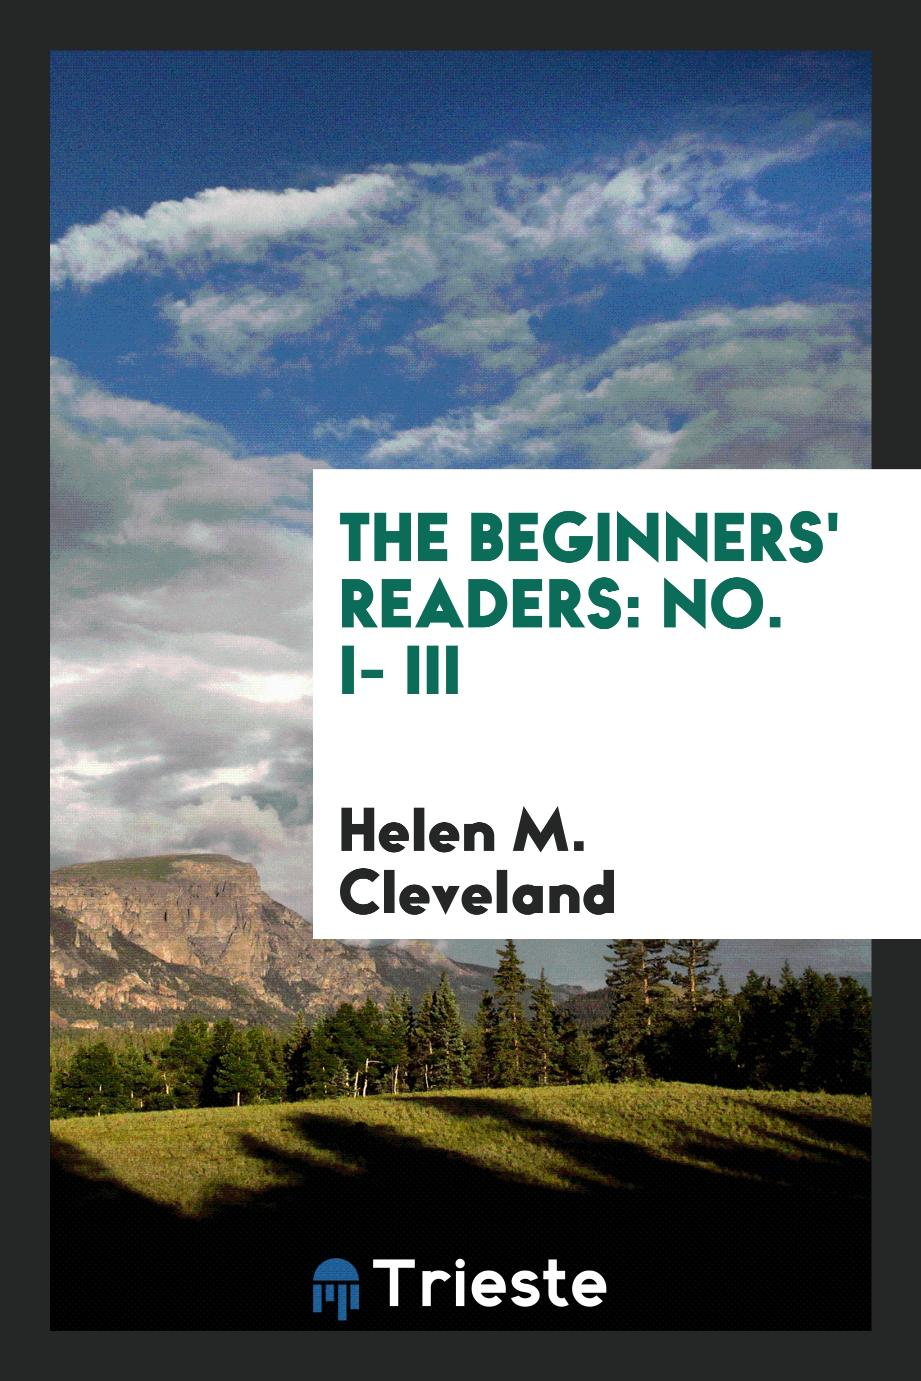 Helen M. Cleveland - The Beginners' Readers: No. I- III